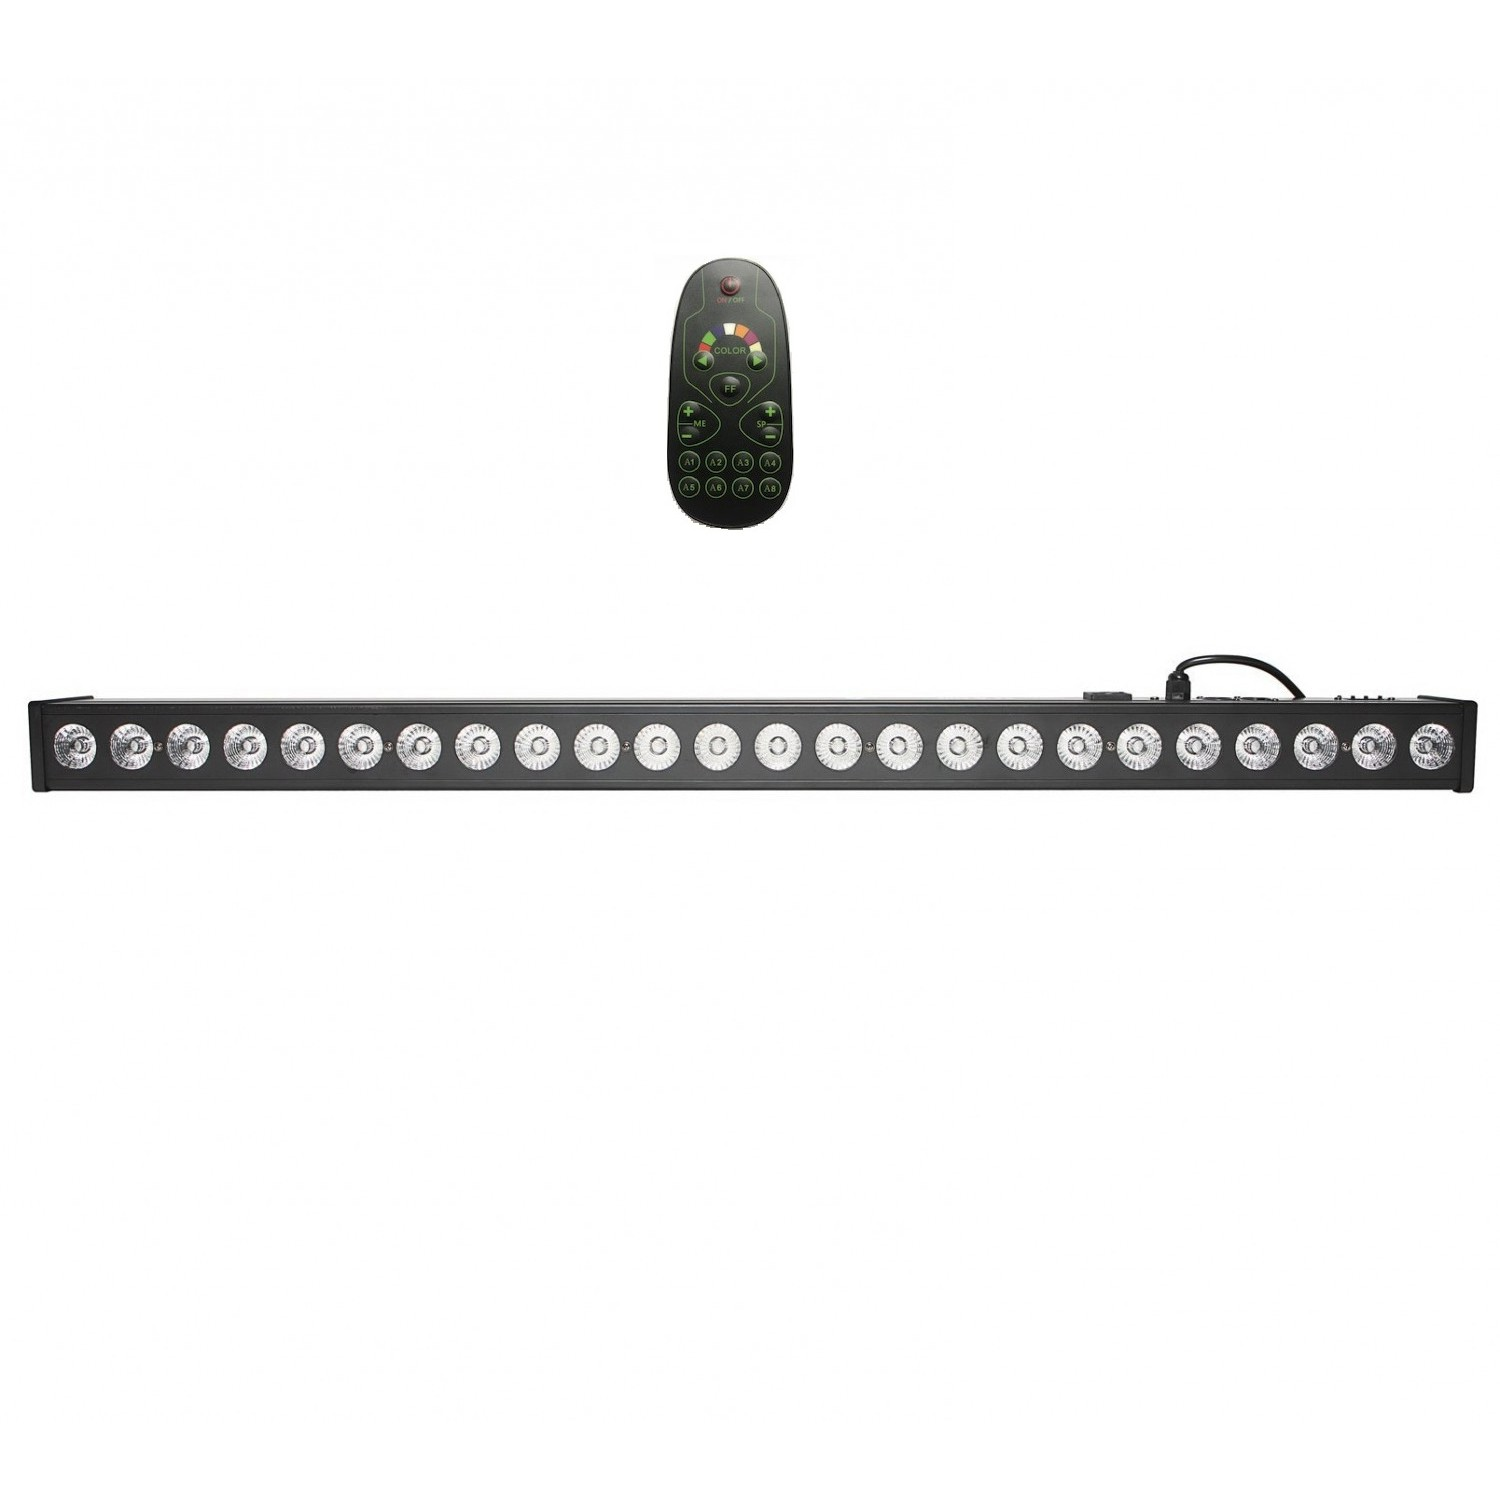 Fractal LED BAR 24x3W - belka LED BAR z pilotem